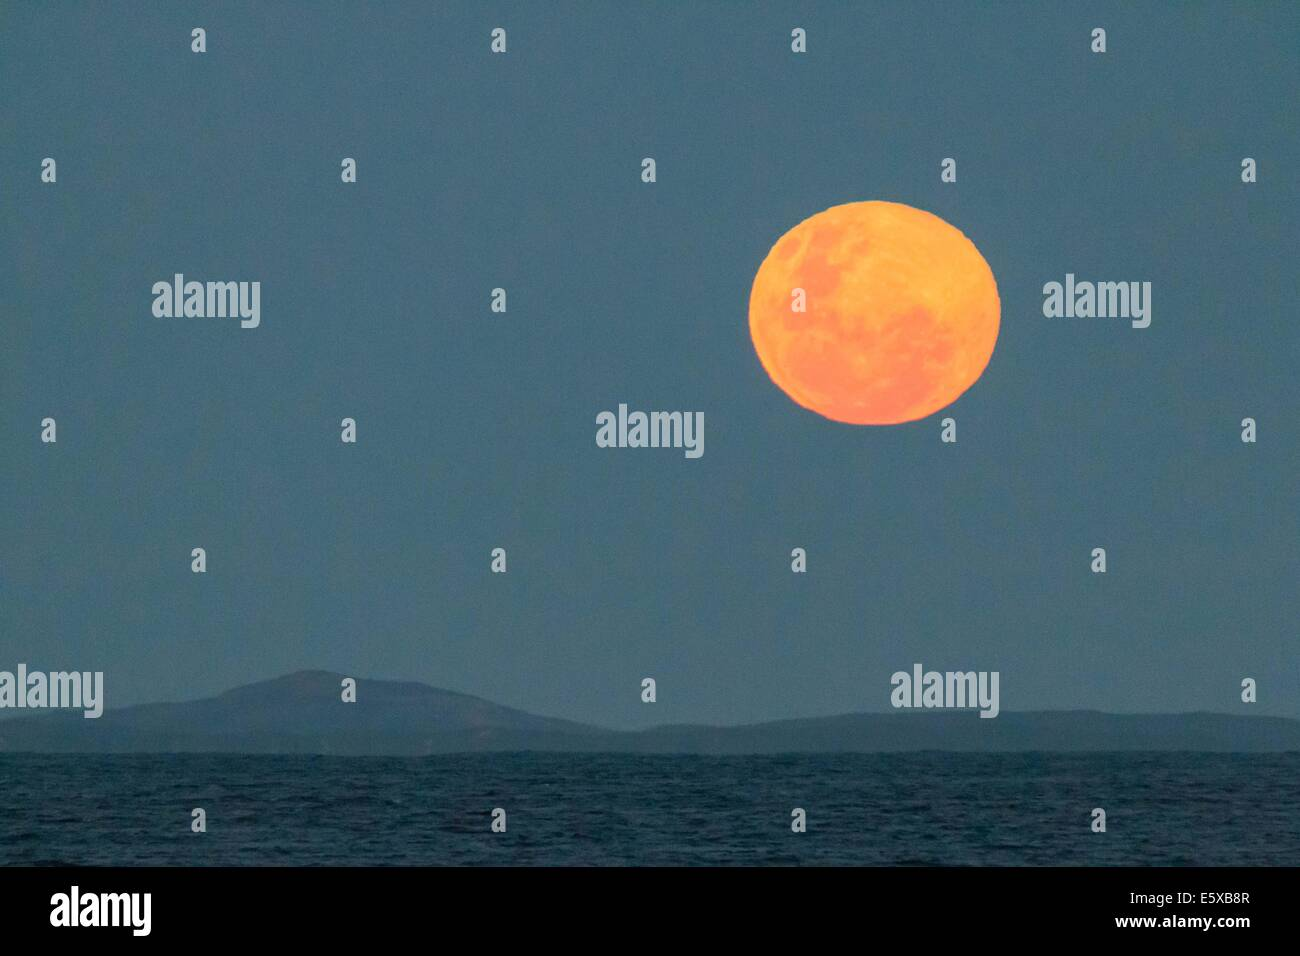 Fullmoon Over The Sea - Stock Image